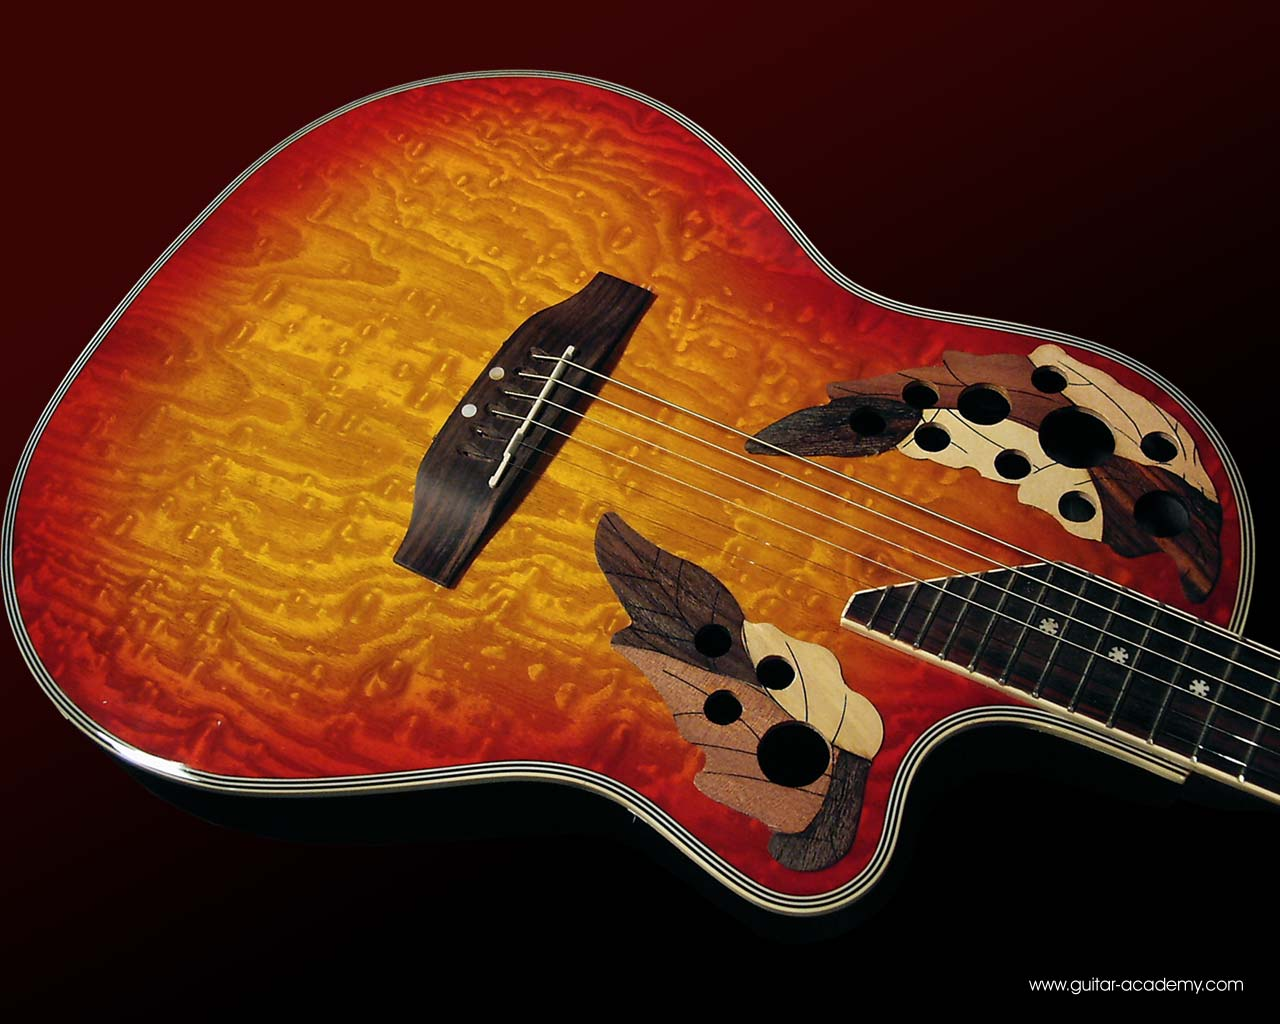 Guitar wallpaper, Ovation style electro acoustic guitar